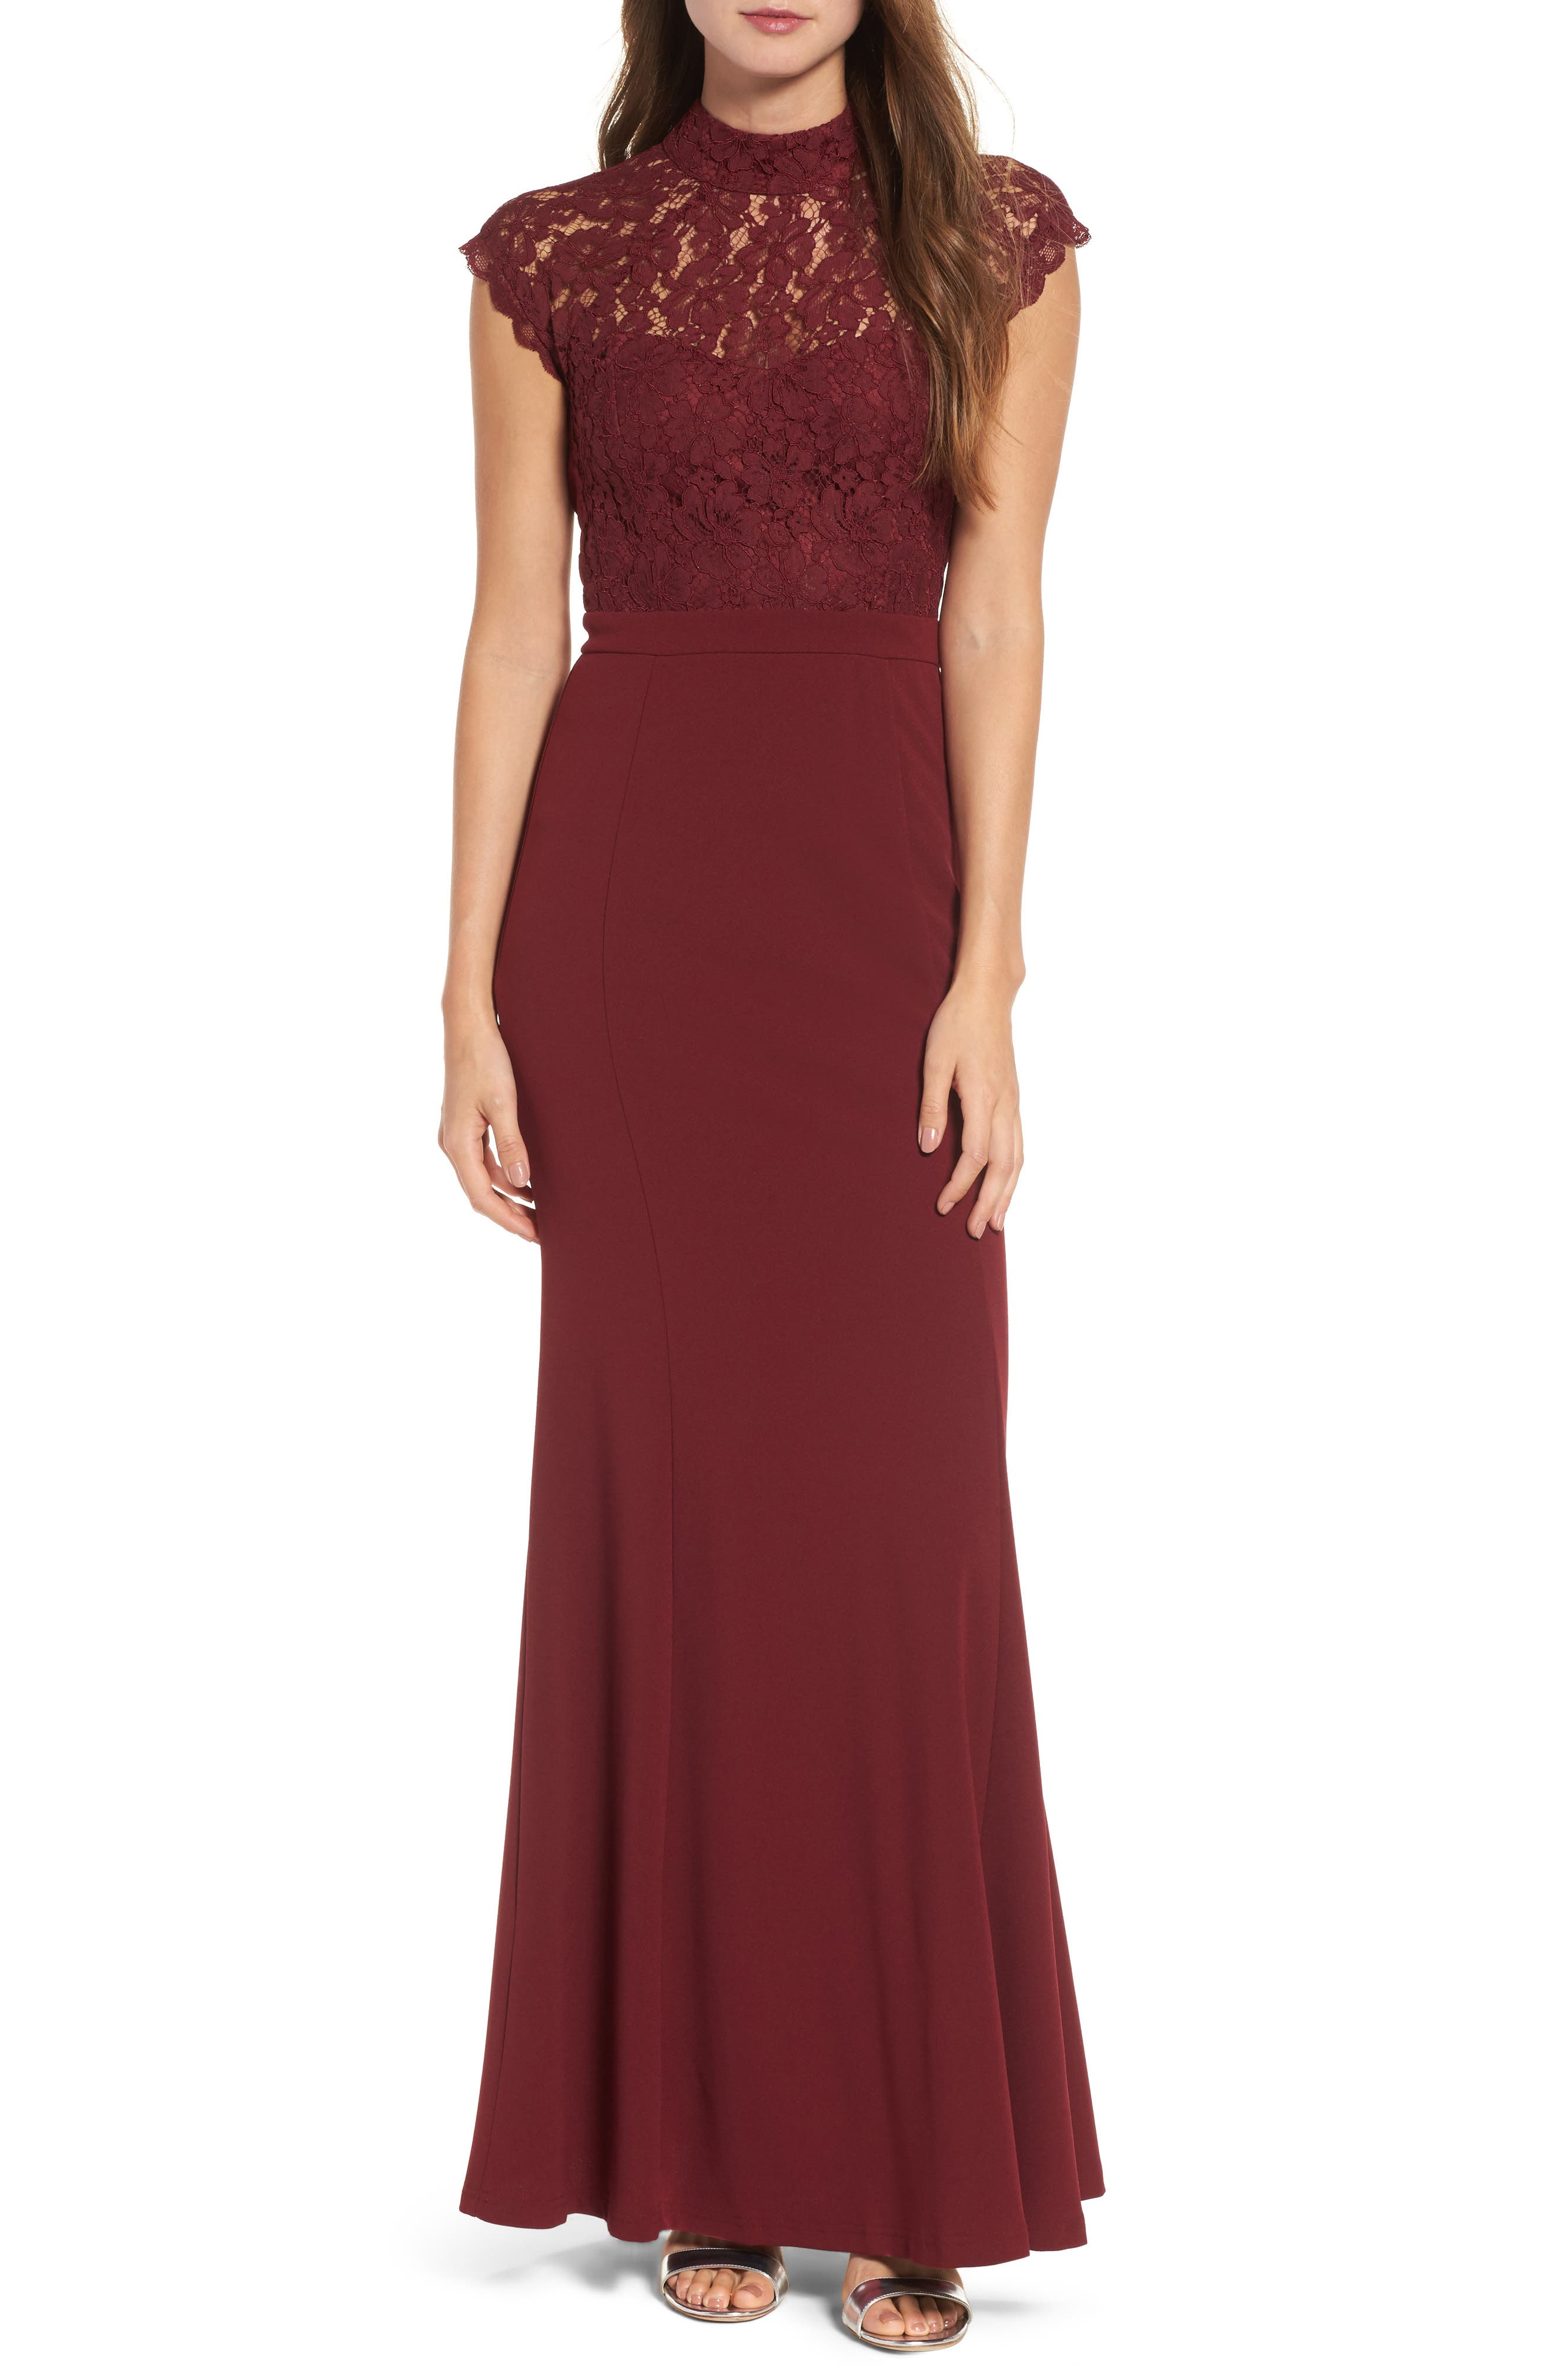 Alternate Image 1 Selected - Lulus Lace Bodice Mermaid Gown